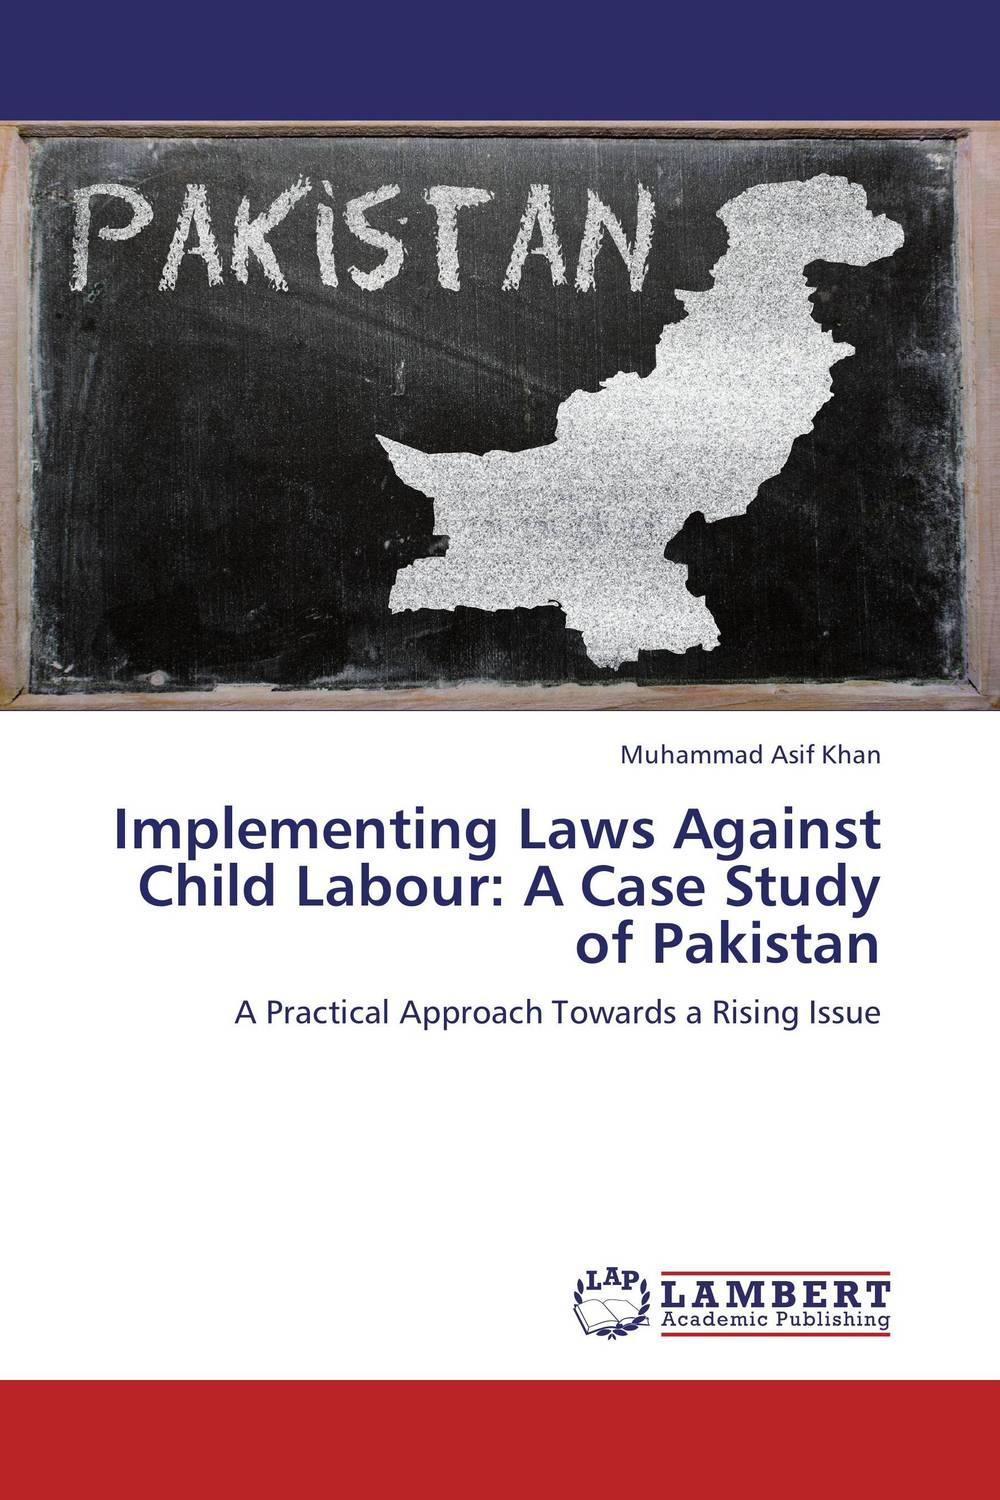 Implementing Laws Against Child Labour: A Case Study of Pakistan durkheim the division of labour in society